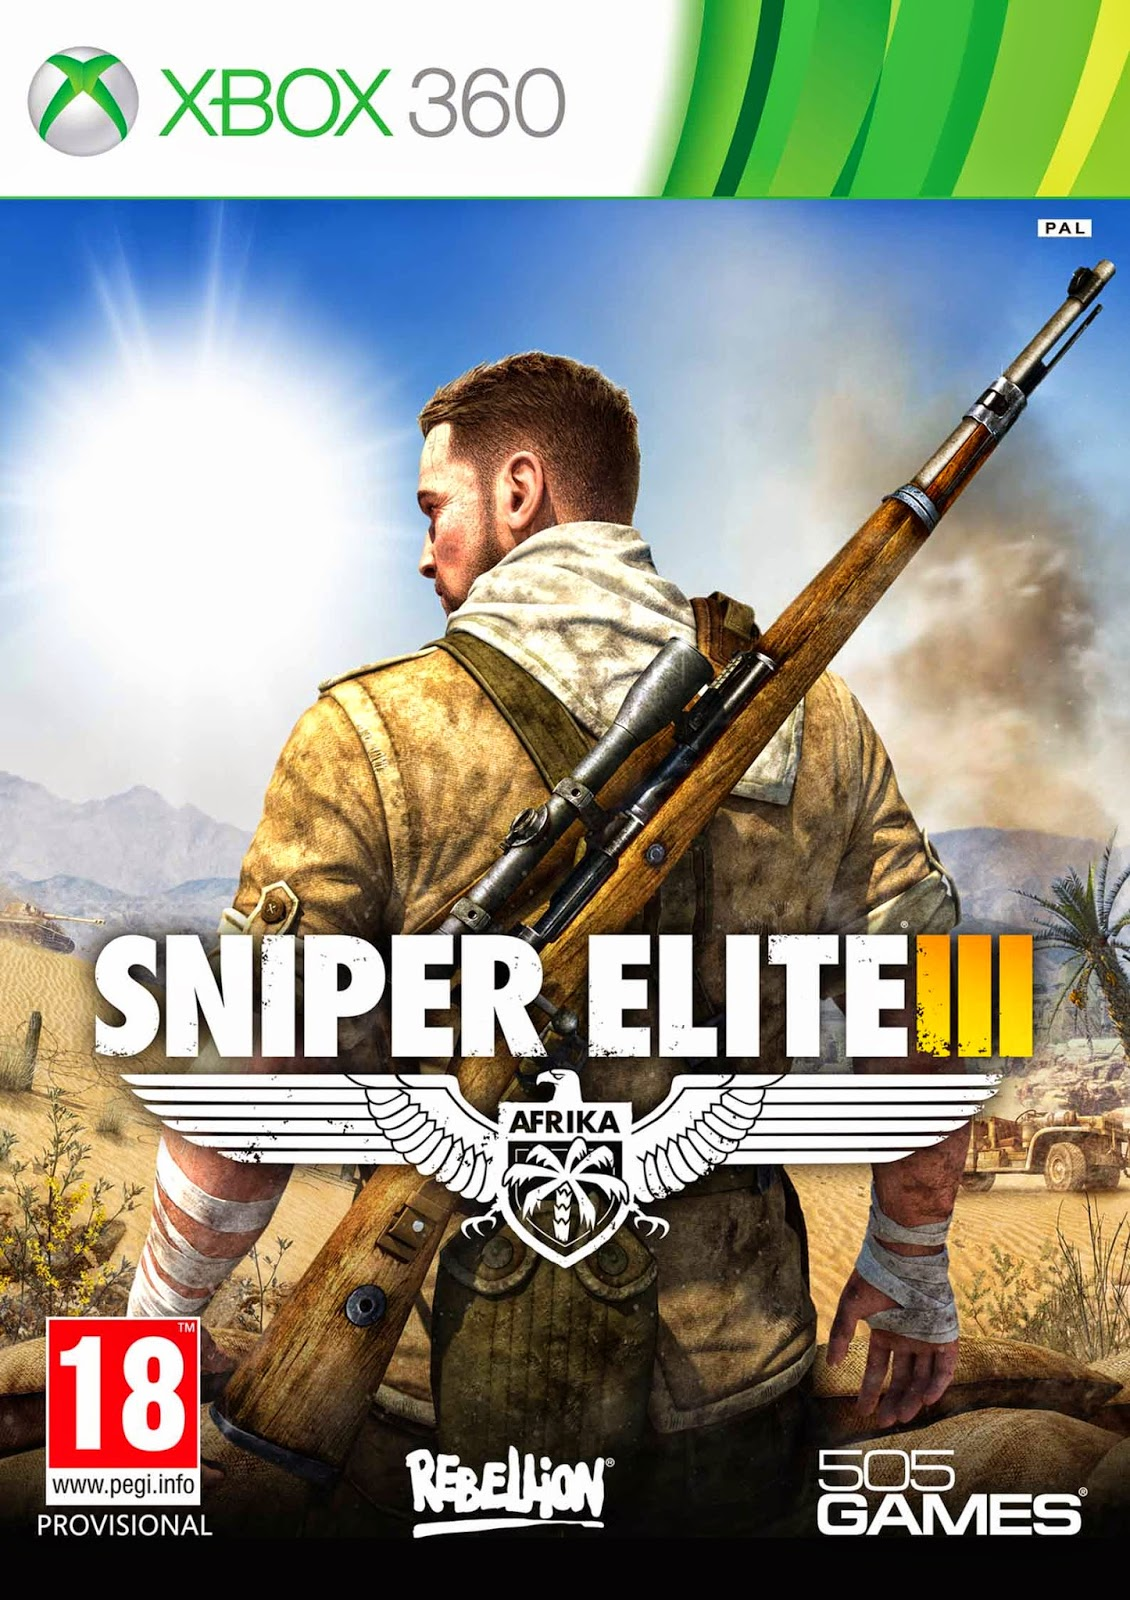 Download - Jogo Sniper Elite III XBOX360-COMPLEX (2014)